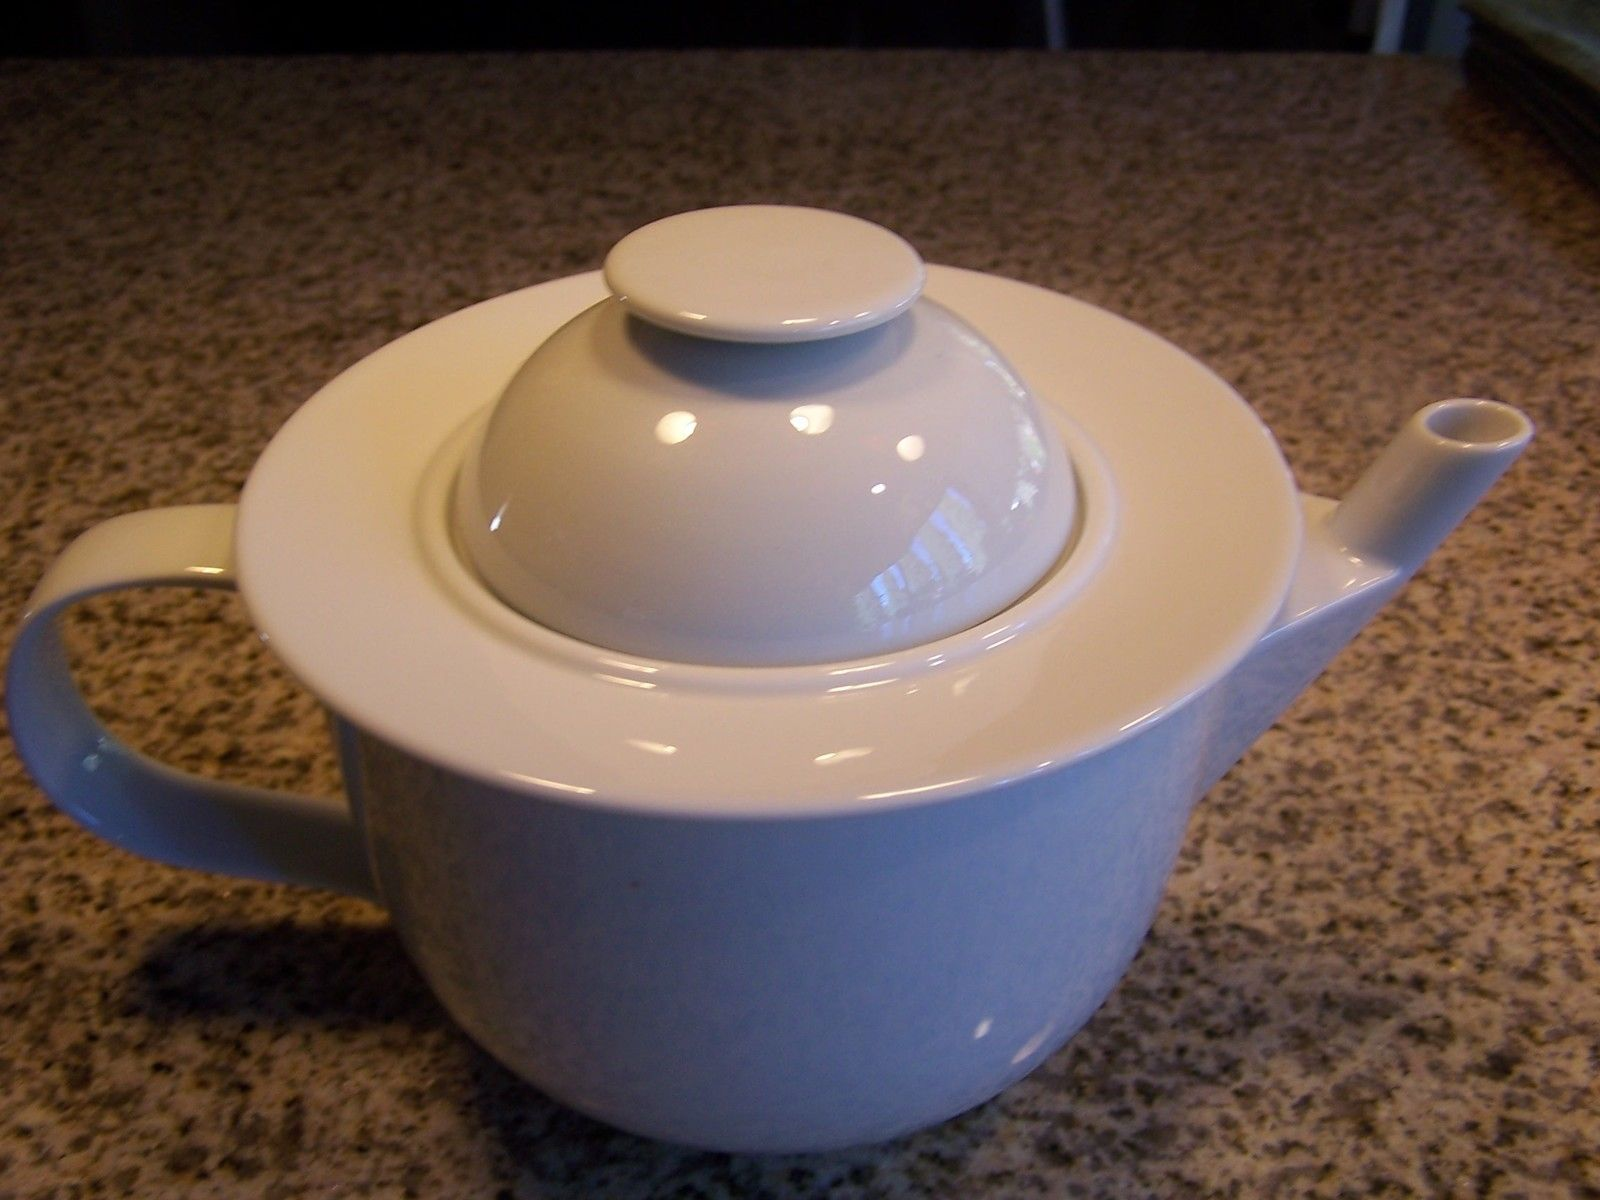 fashion style lowest price price reduced Excellent Alessi Tendentse Germany White Porcelain Teapot ...